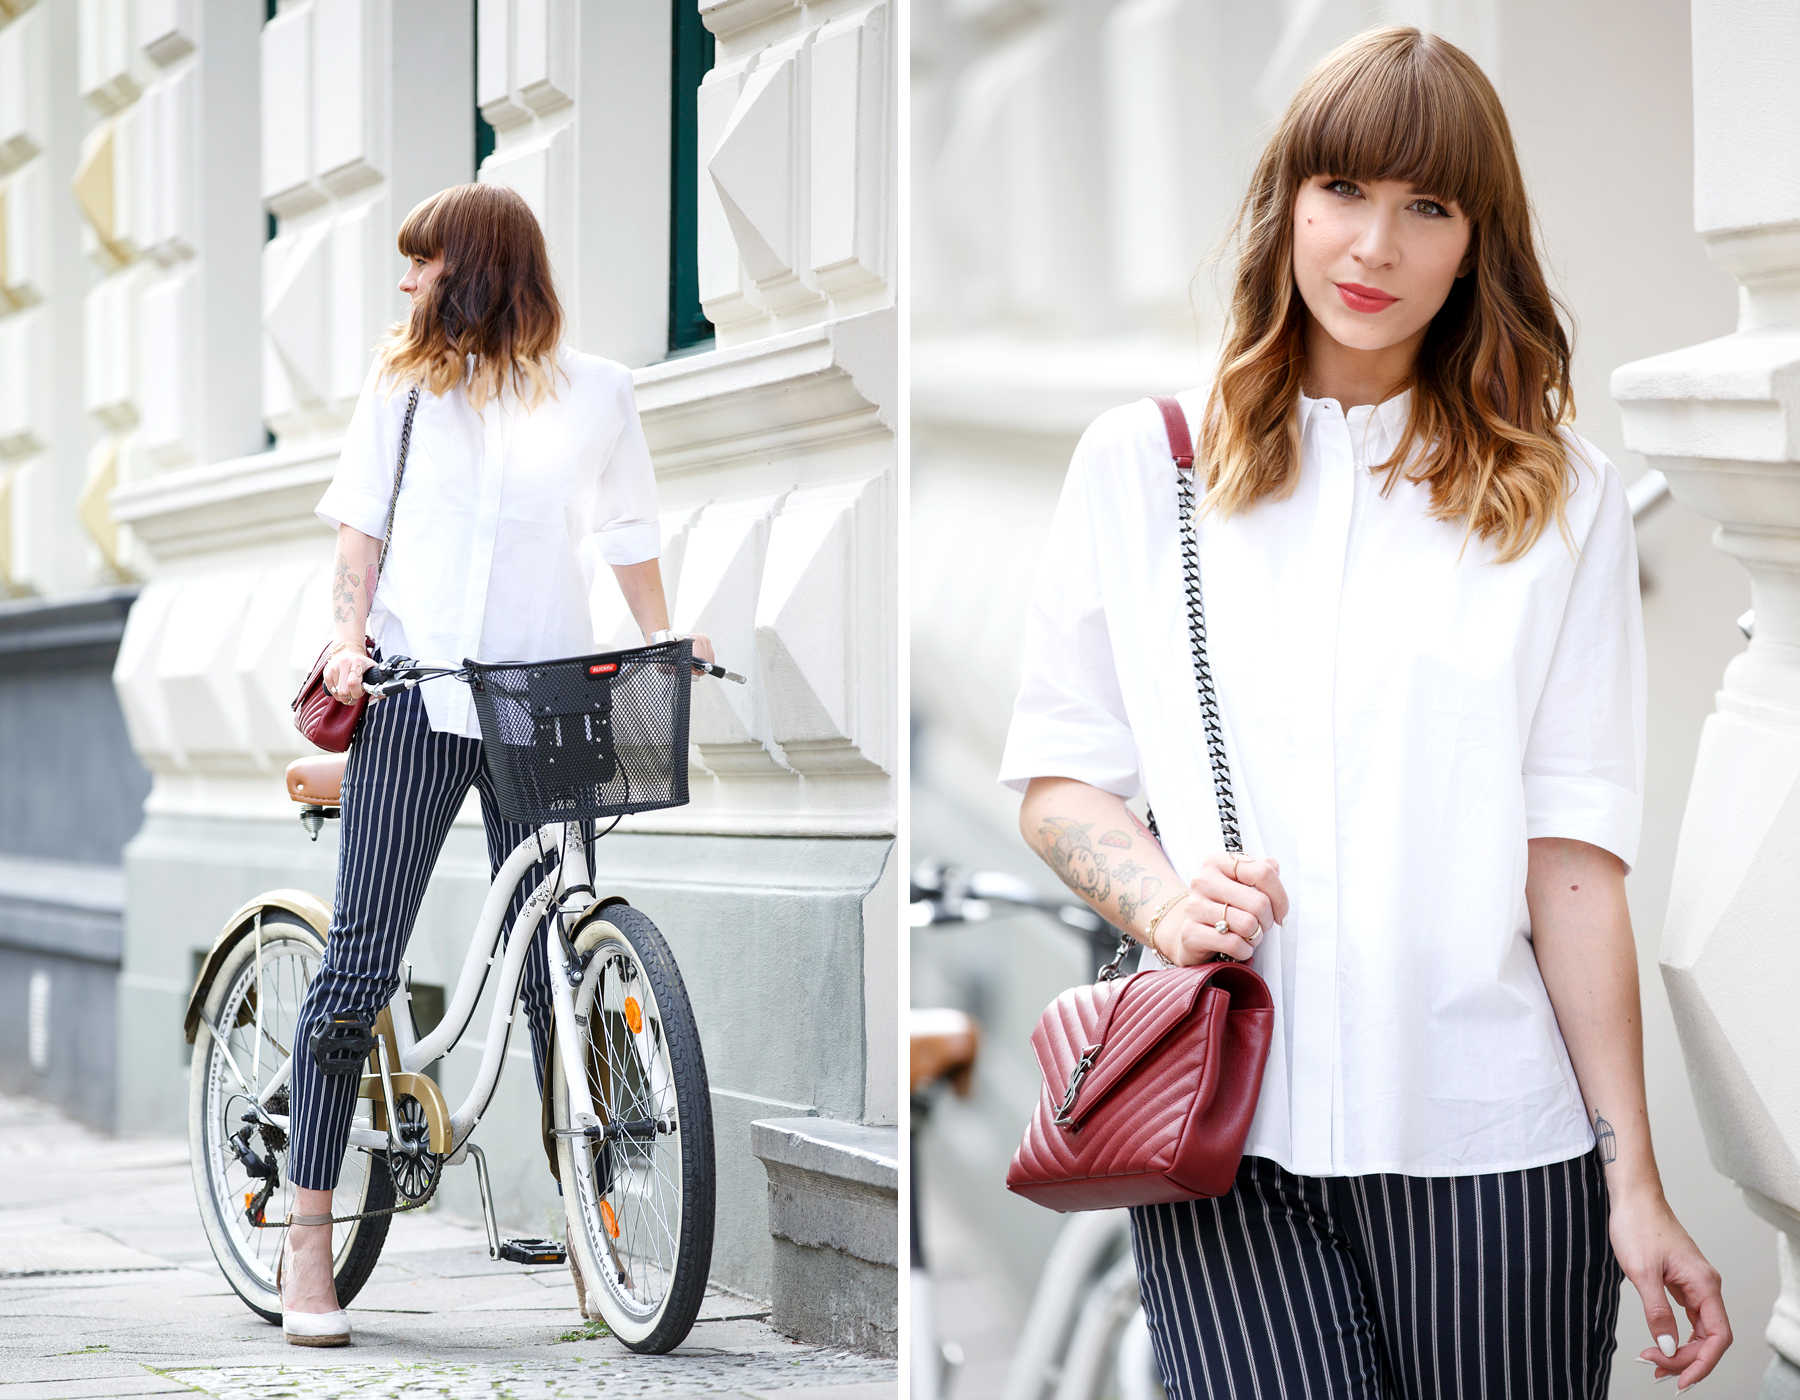 bike bicycle reserved georgia may jagger maritime ysl monogram bag red blue white outfit ootd look lookbook brunette bangs french parisienne parisian paris düsseldorf cute girly styling fashionblogger ricarda schernus cats & dogs blog 6